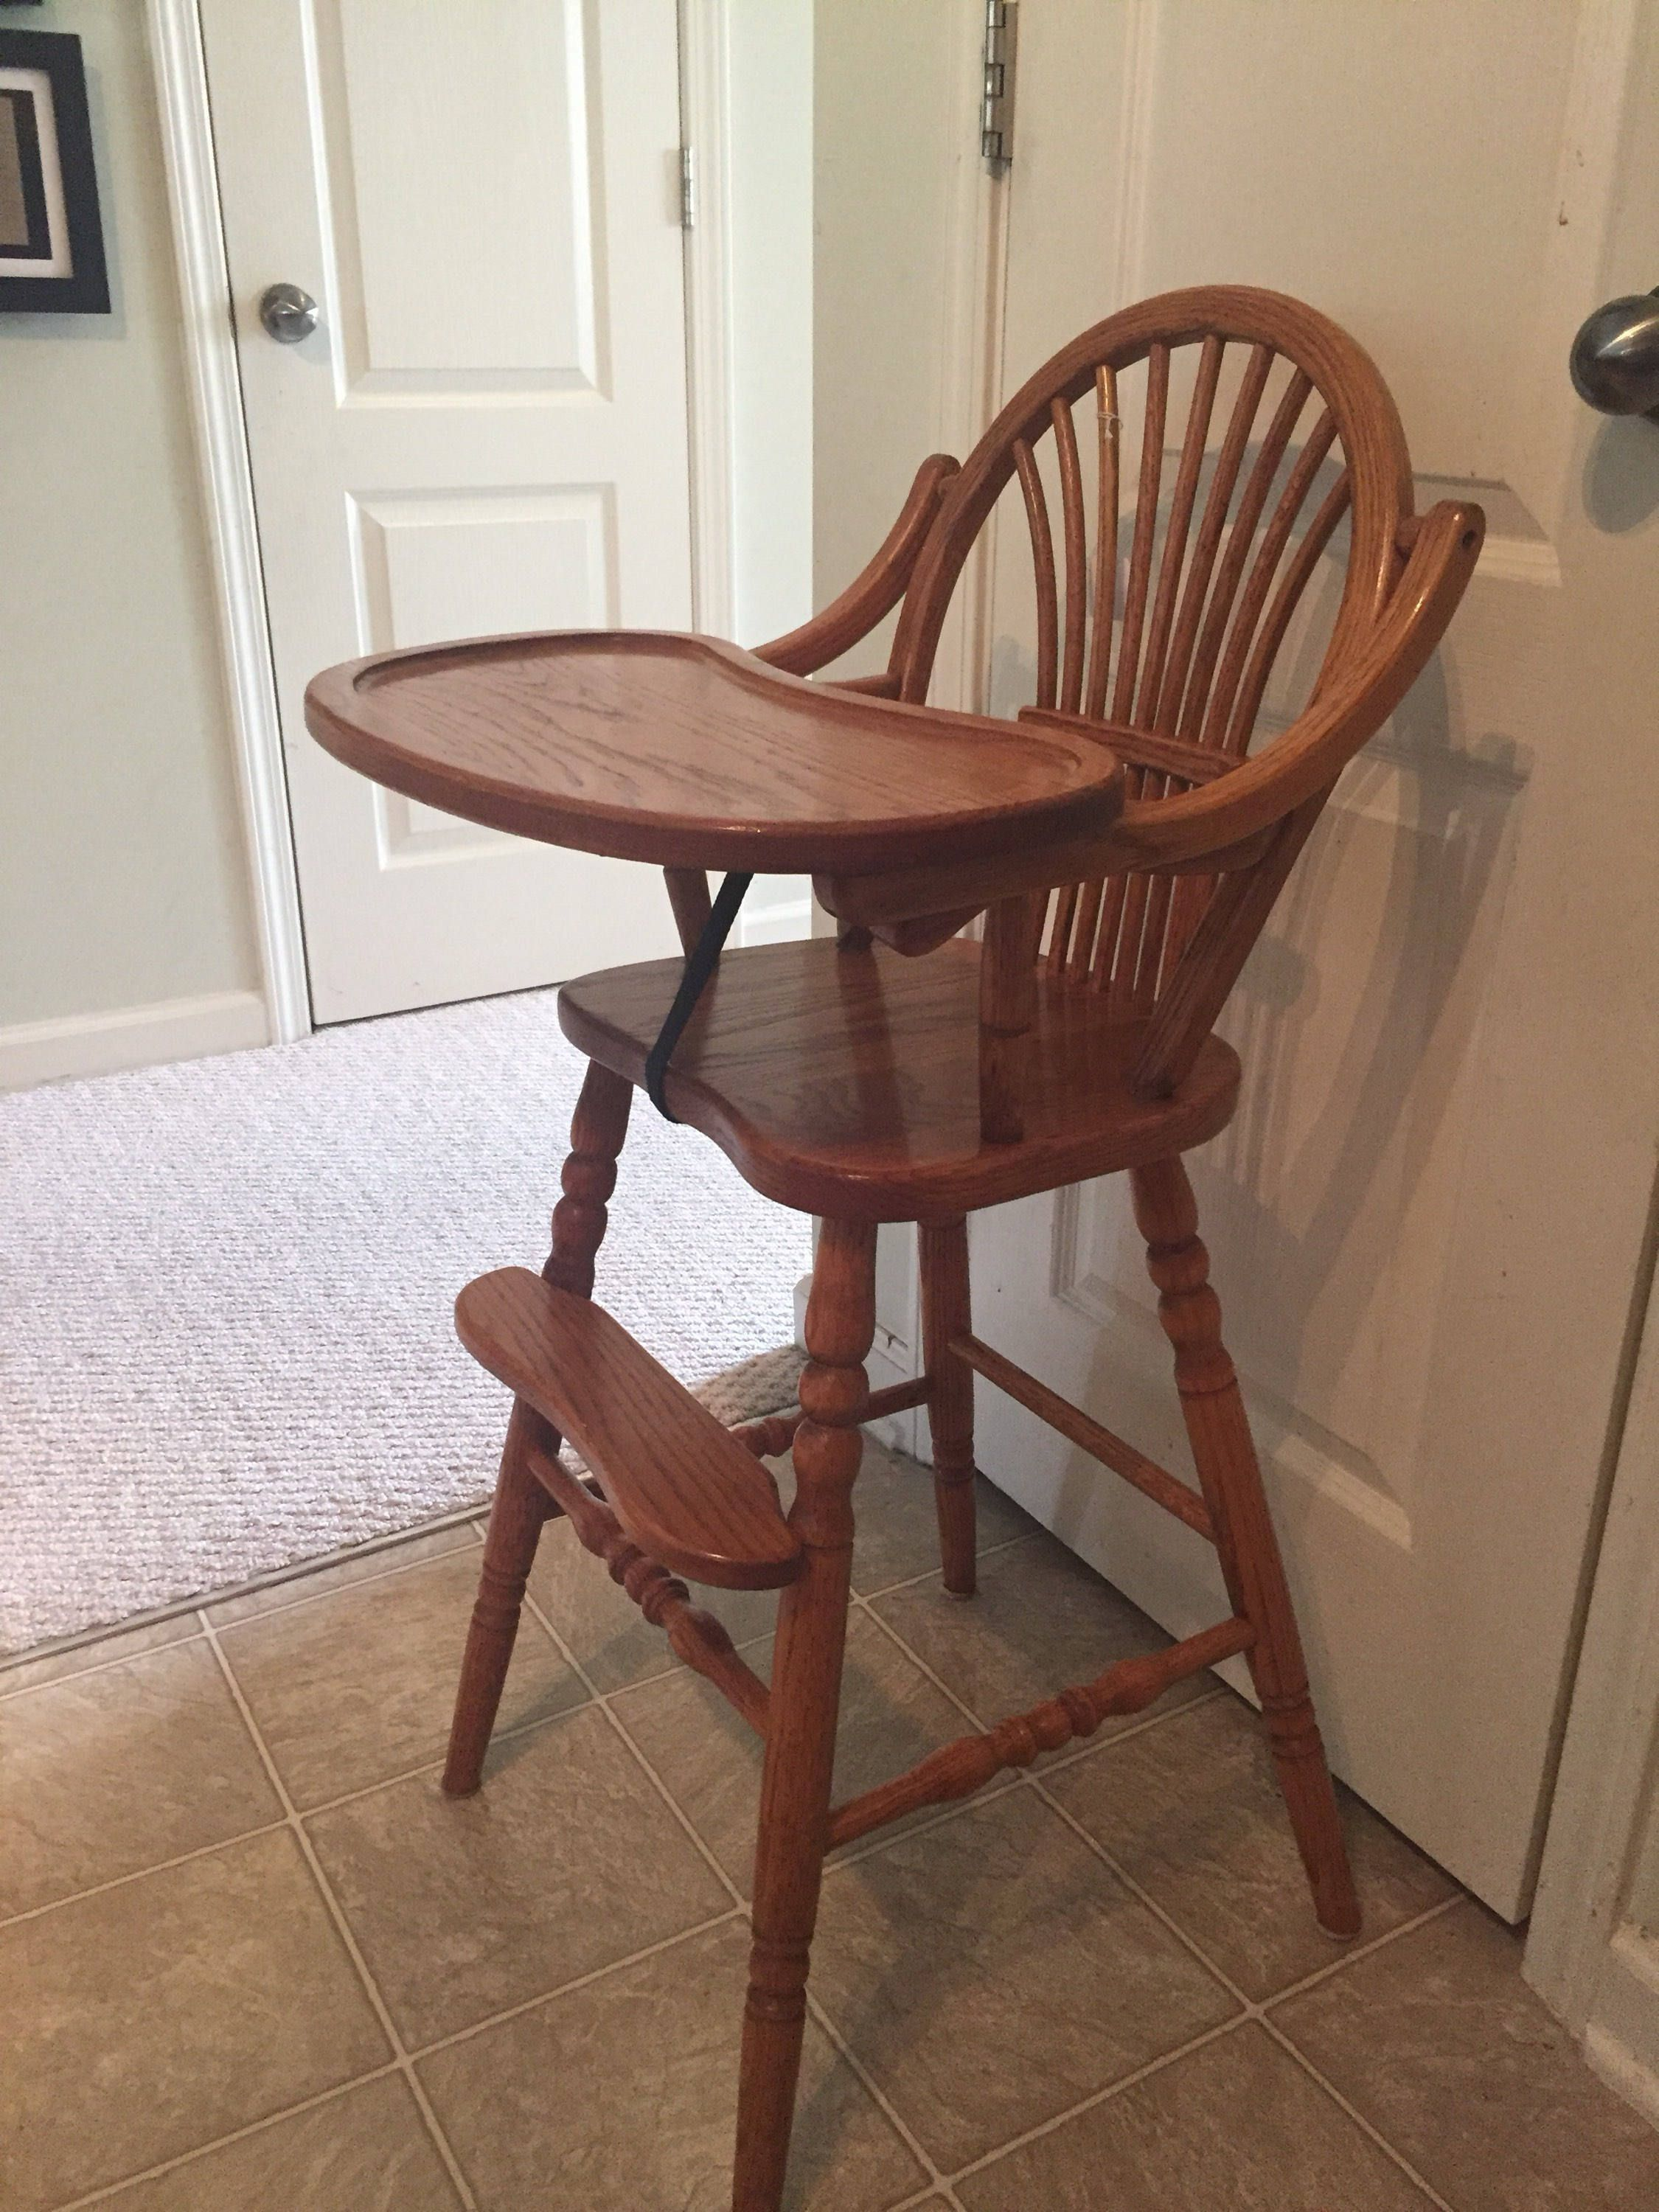 Reduced Price Vintage Wooden High Chair Jenny Lind